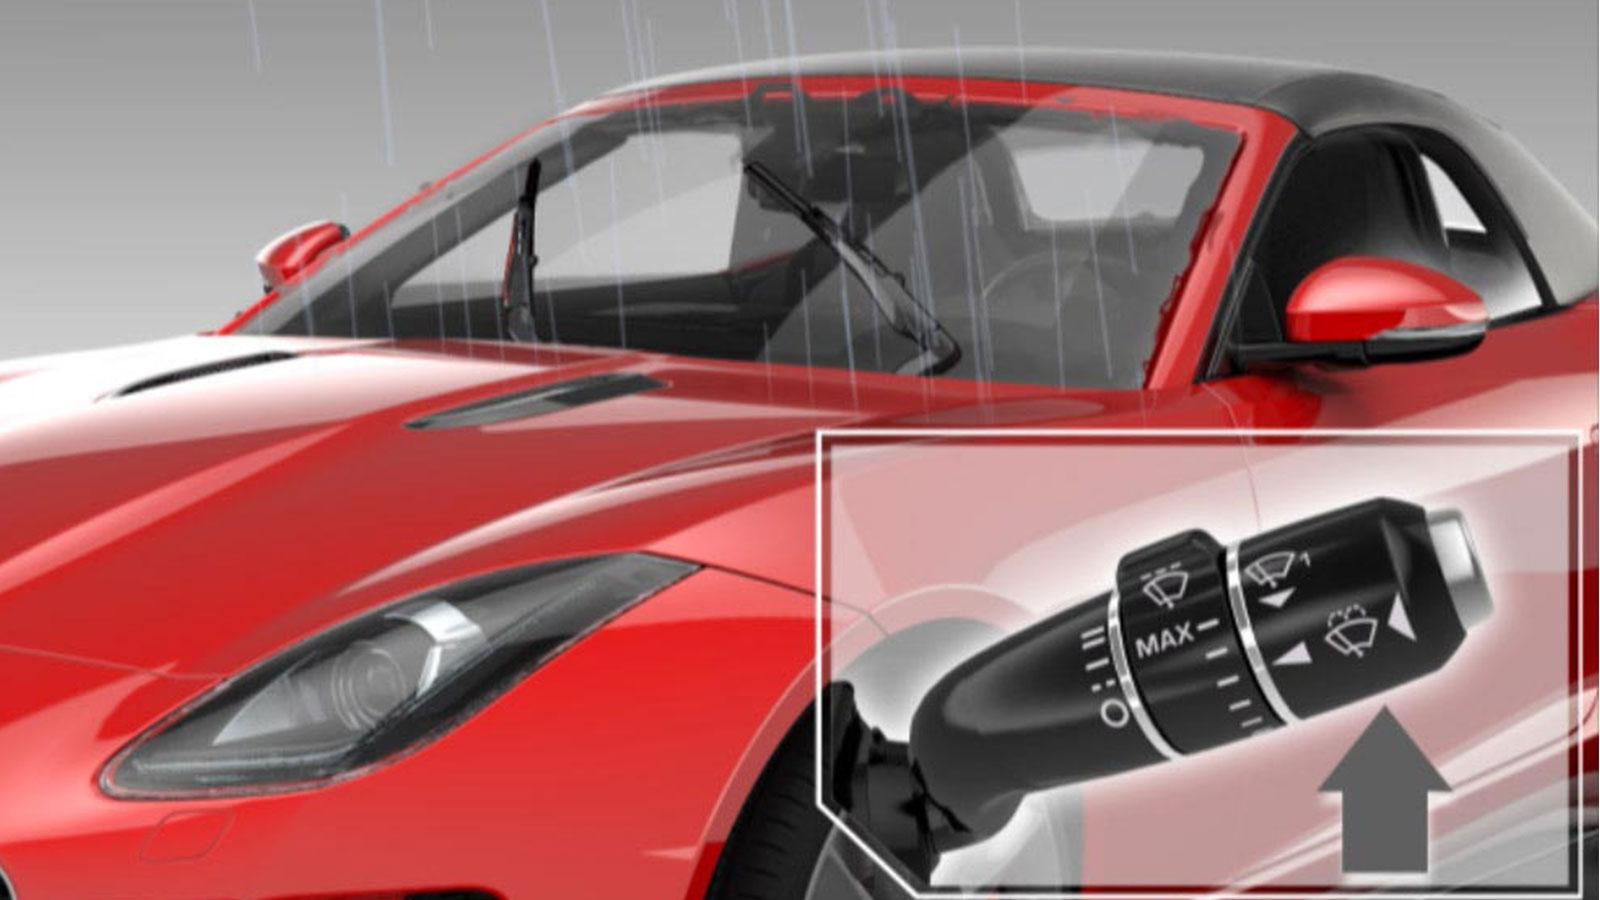 Red Jaguar F-Type With Close-Up Of Windscreen Wiper Controls